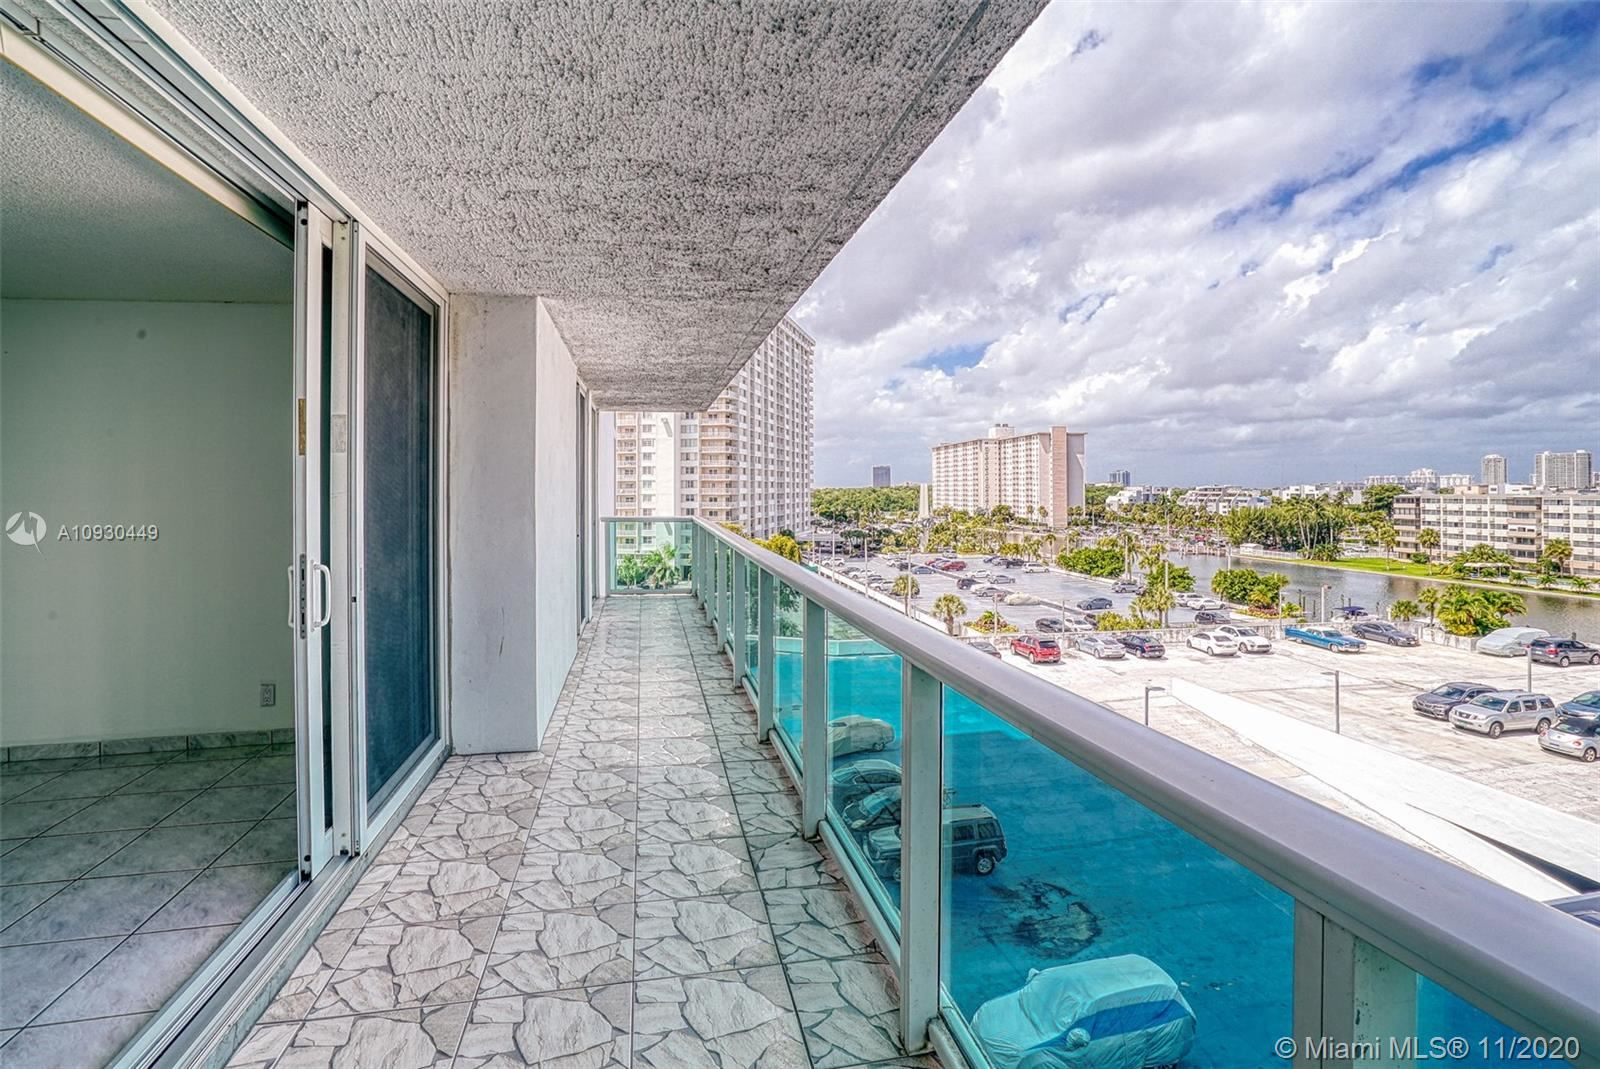 Photo of 100 Bayview Dr #628, Sunny Isles Beach, FL 33160 (MLS # A10930449)